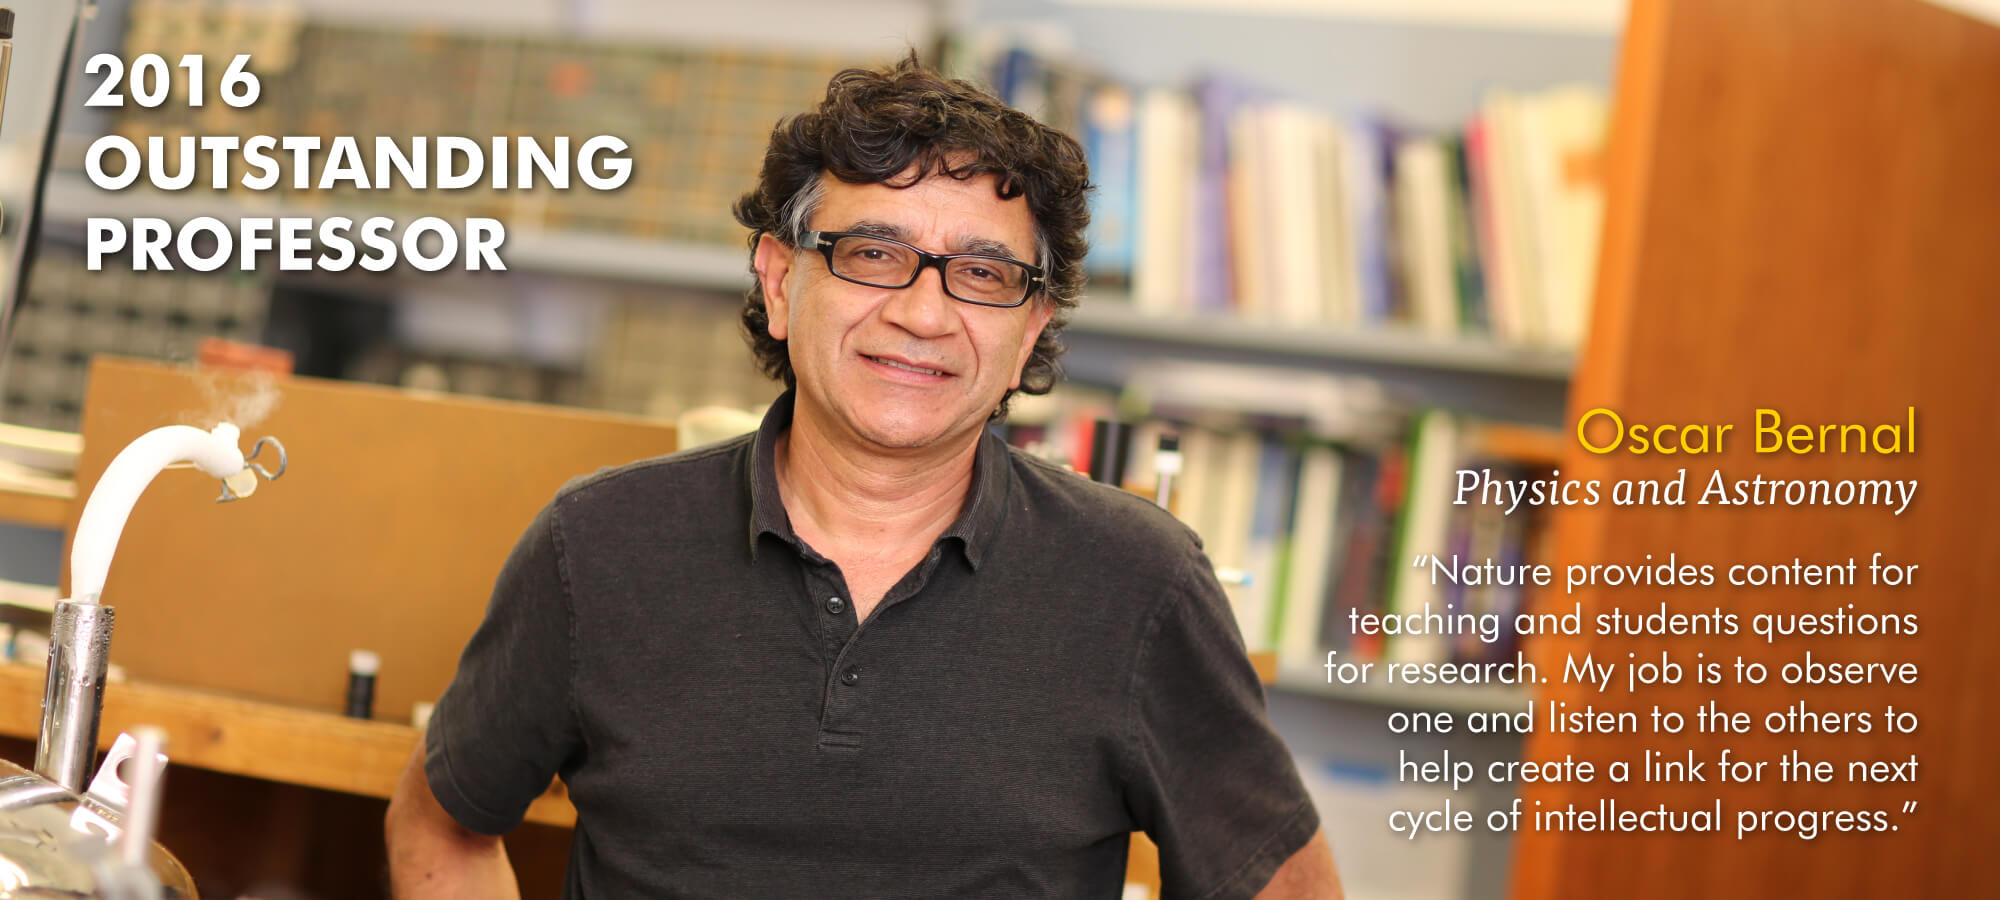 2016 Outstanding Professor Oscar Bernal